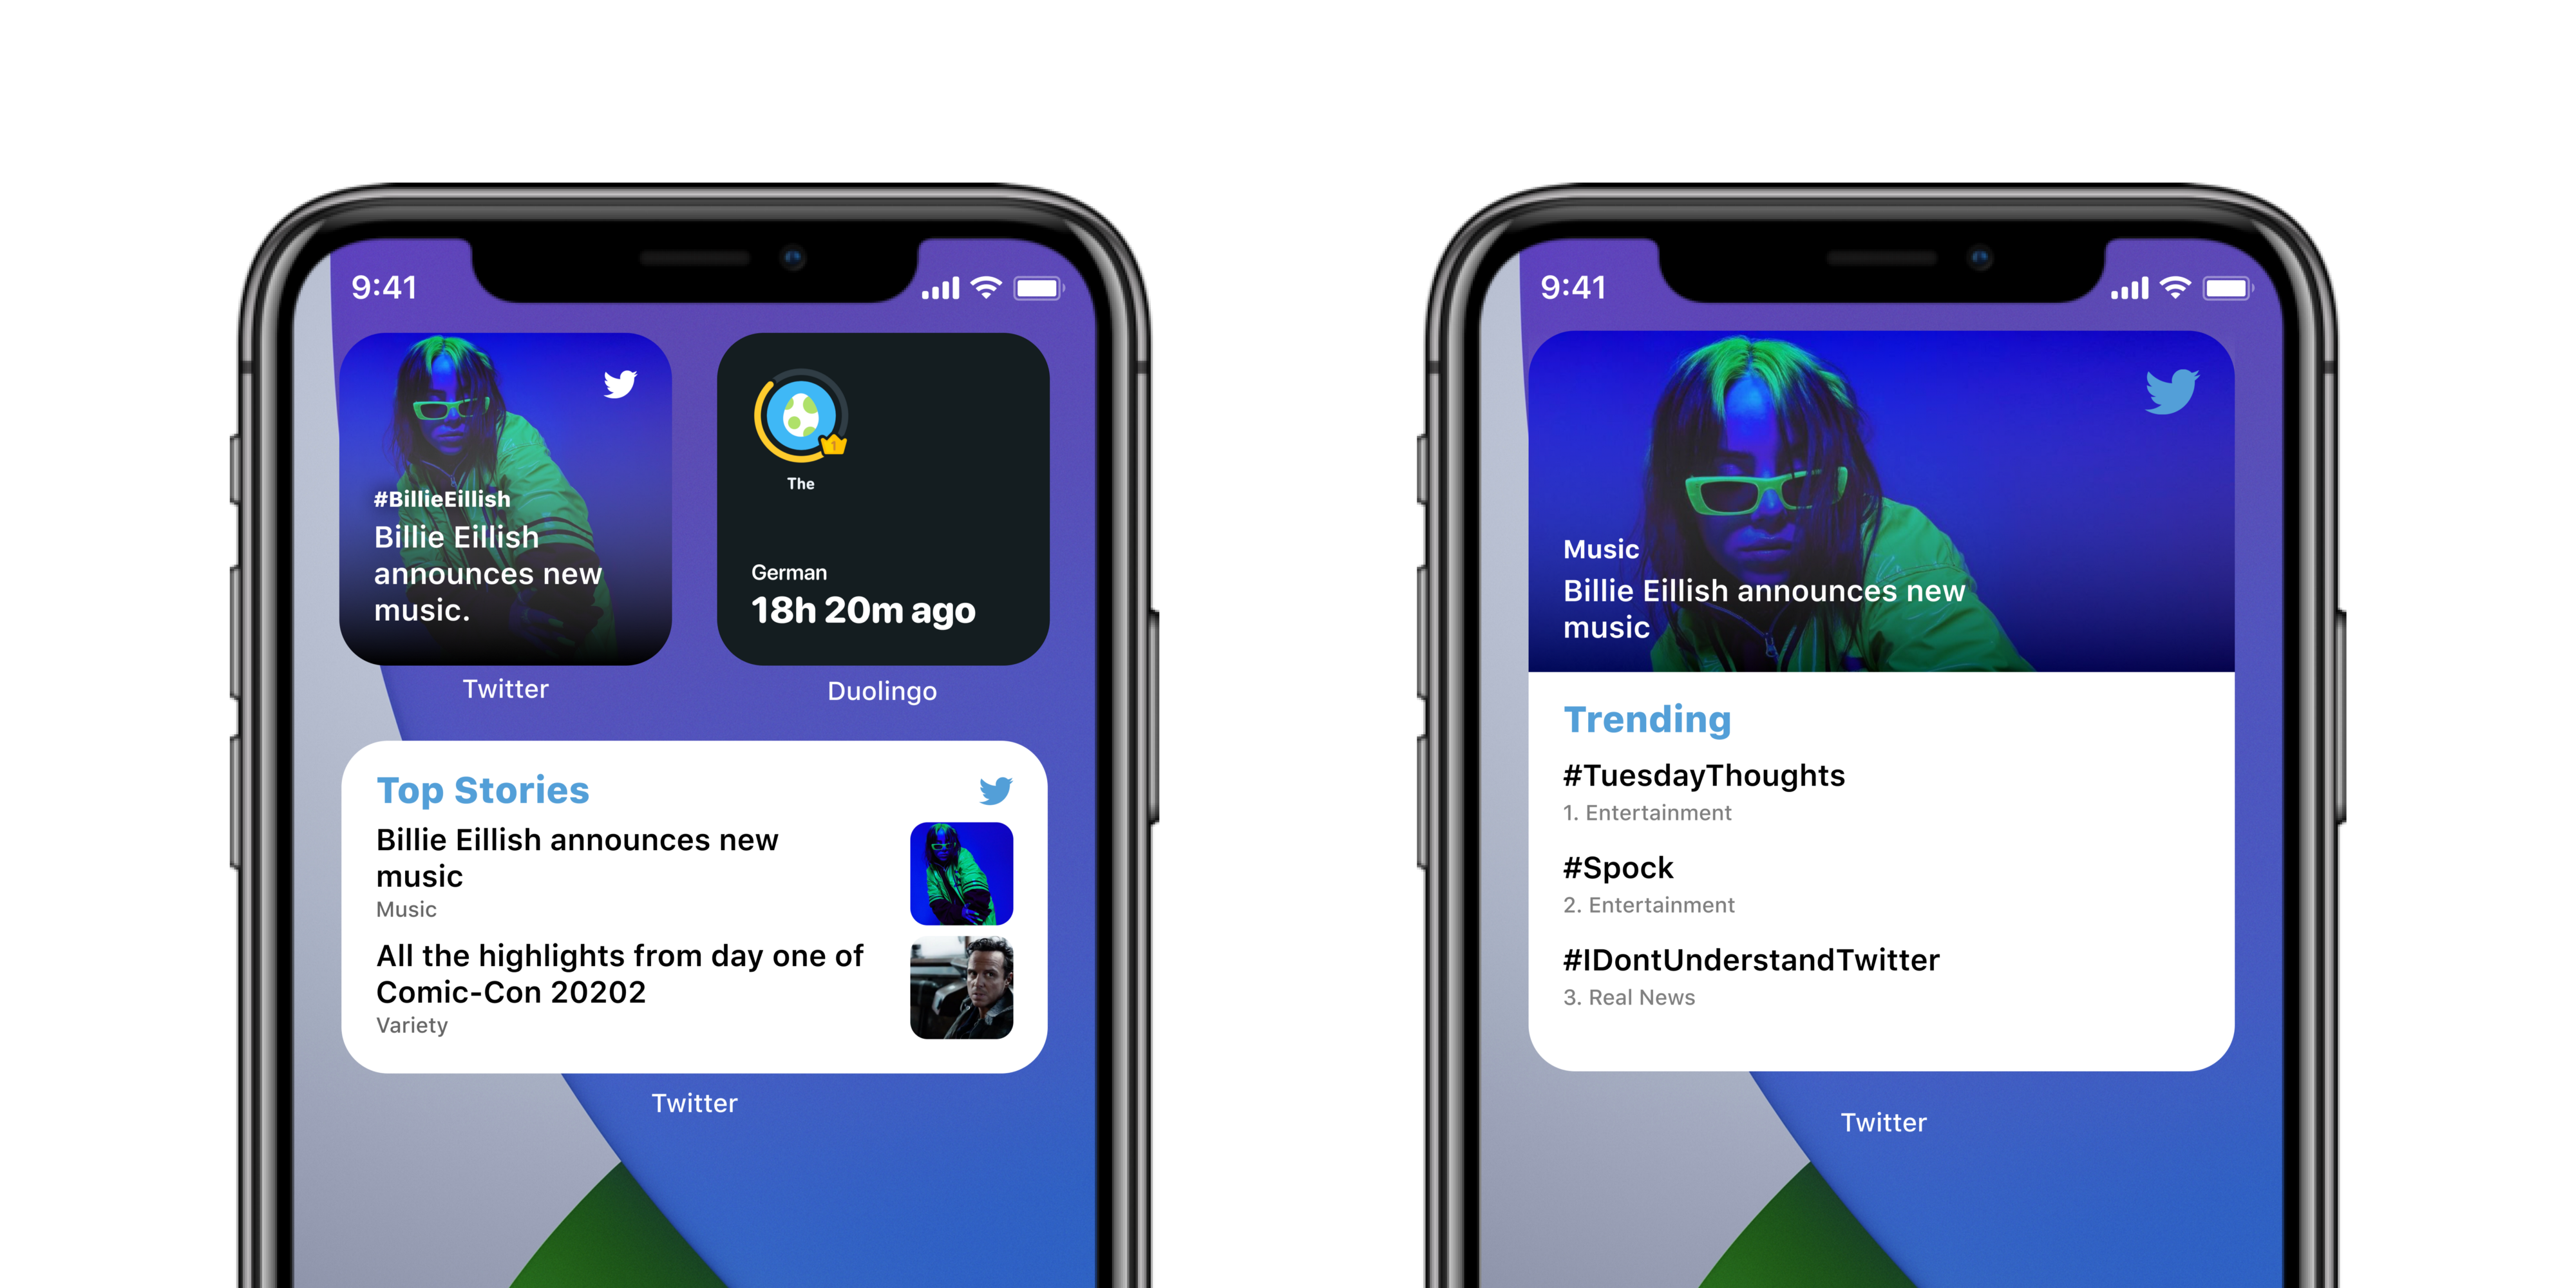 Designing Widgets For Ios Macos And Ipados The Ultimate Guide By Vedant Jain Aug 2020 Ux Collective